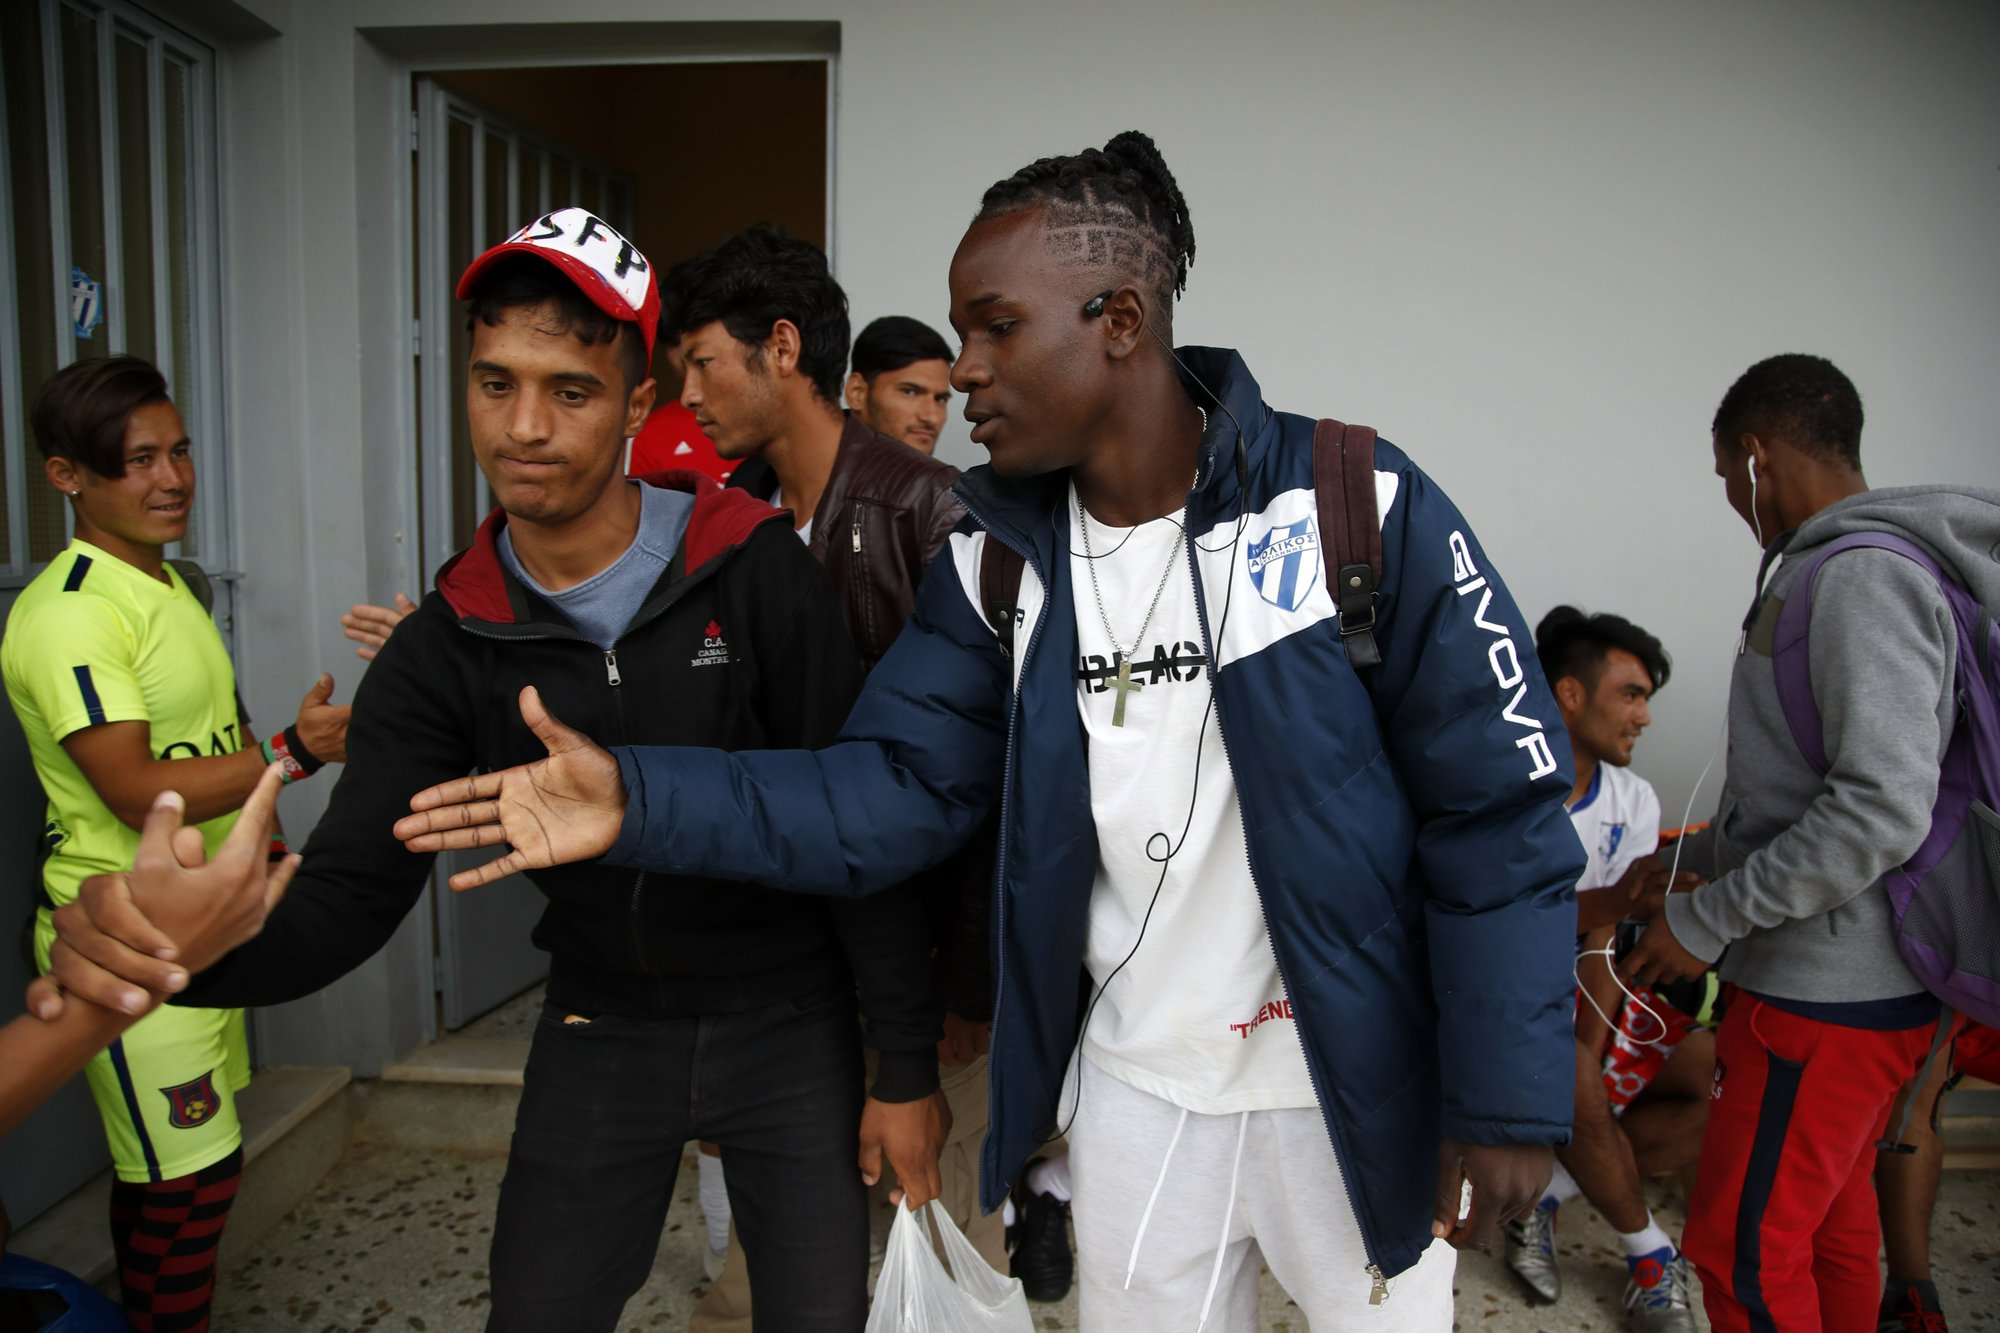 Migrants on the island of Lesbos find refuge on soccer field